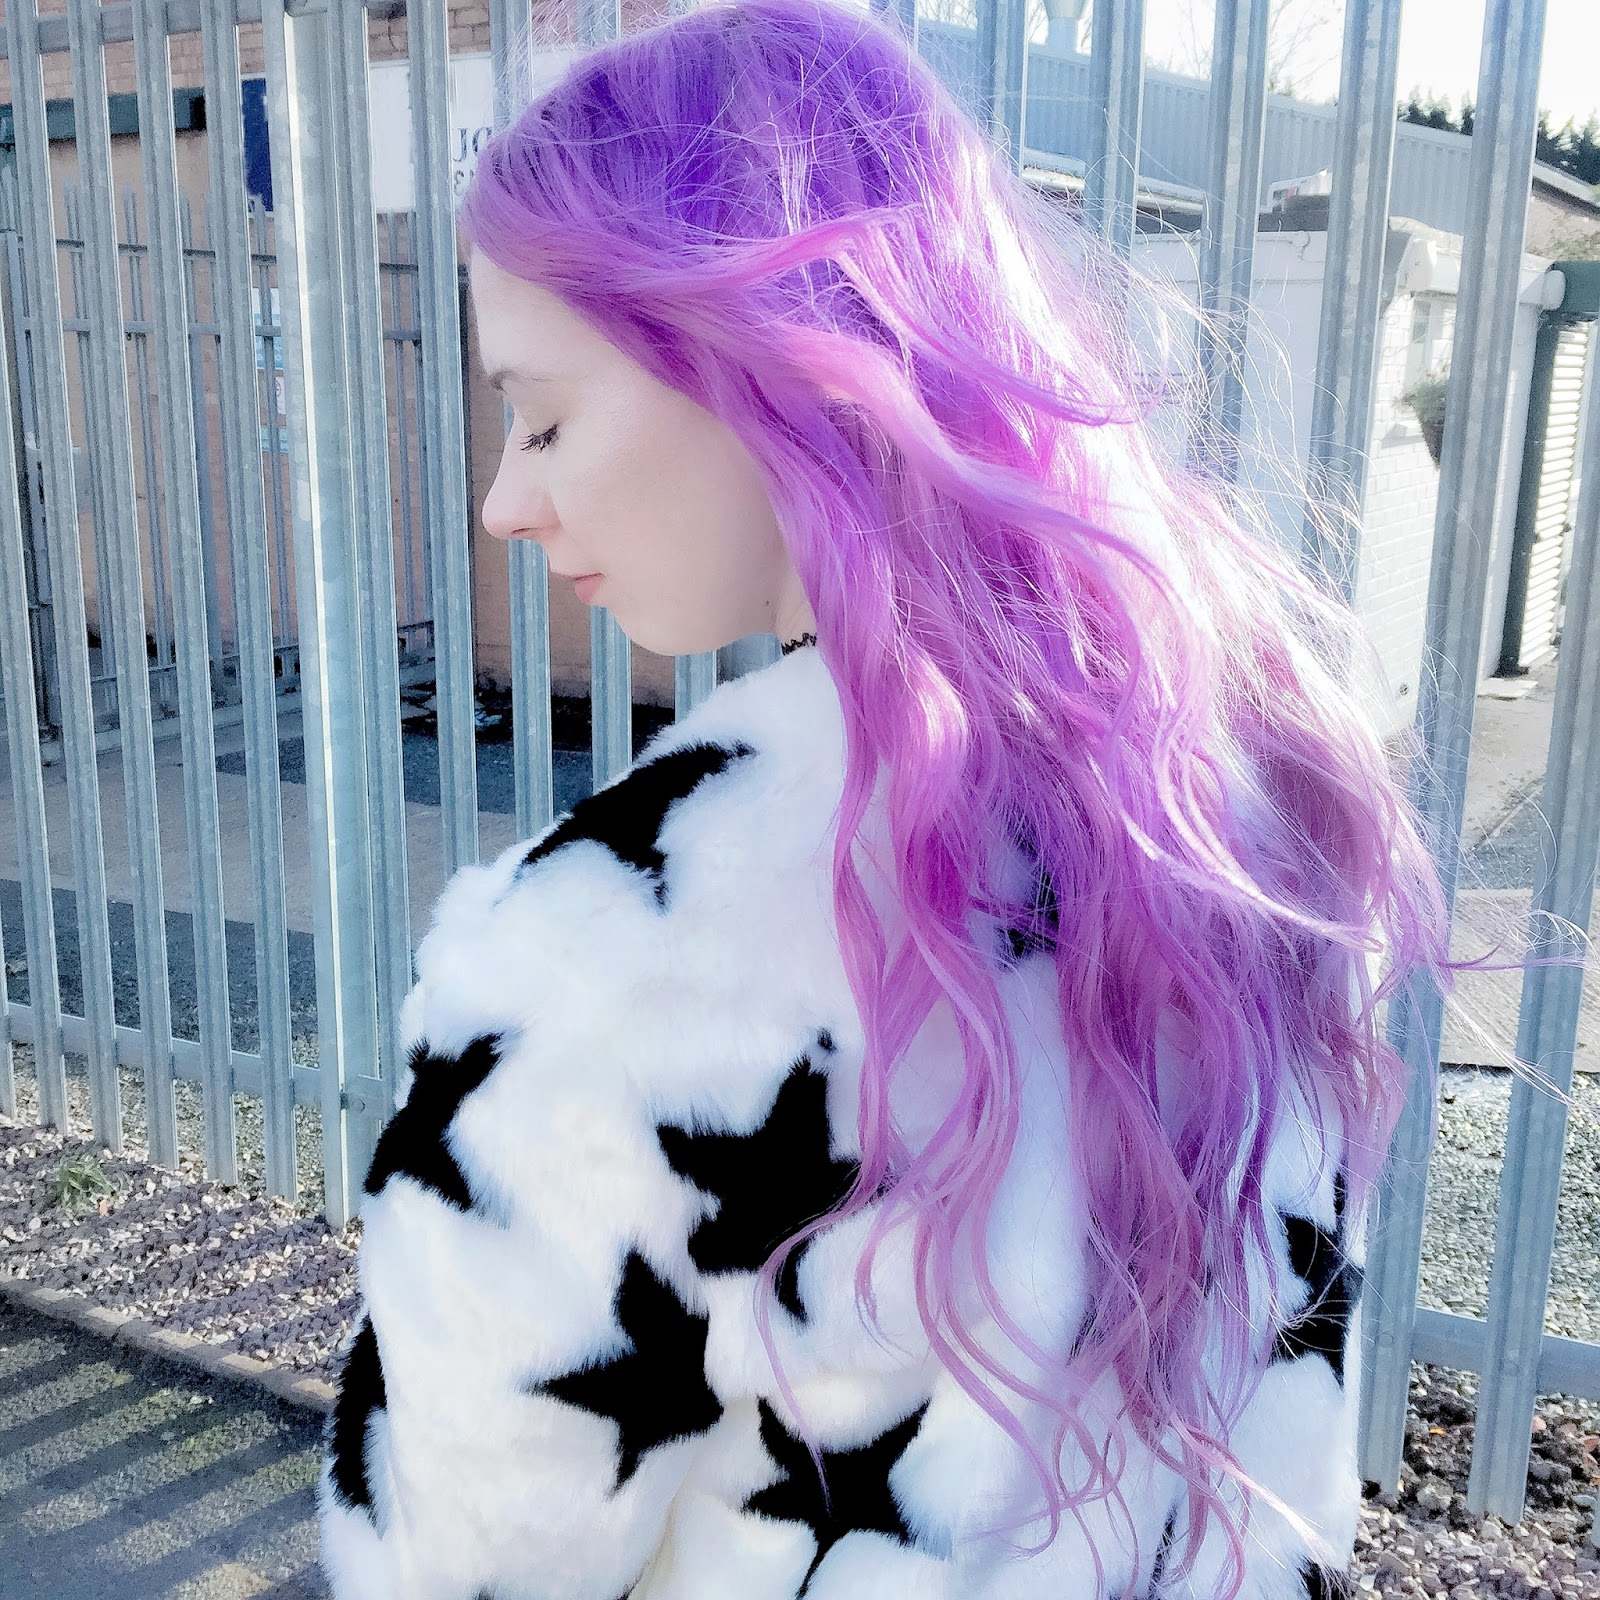 PURPLE HAIR AND FLUFFY STAR FAUX FUR